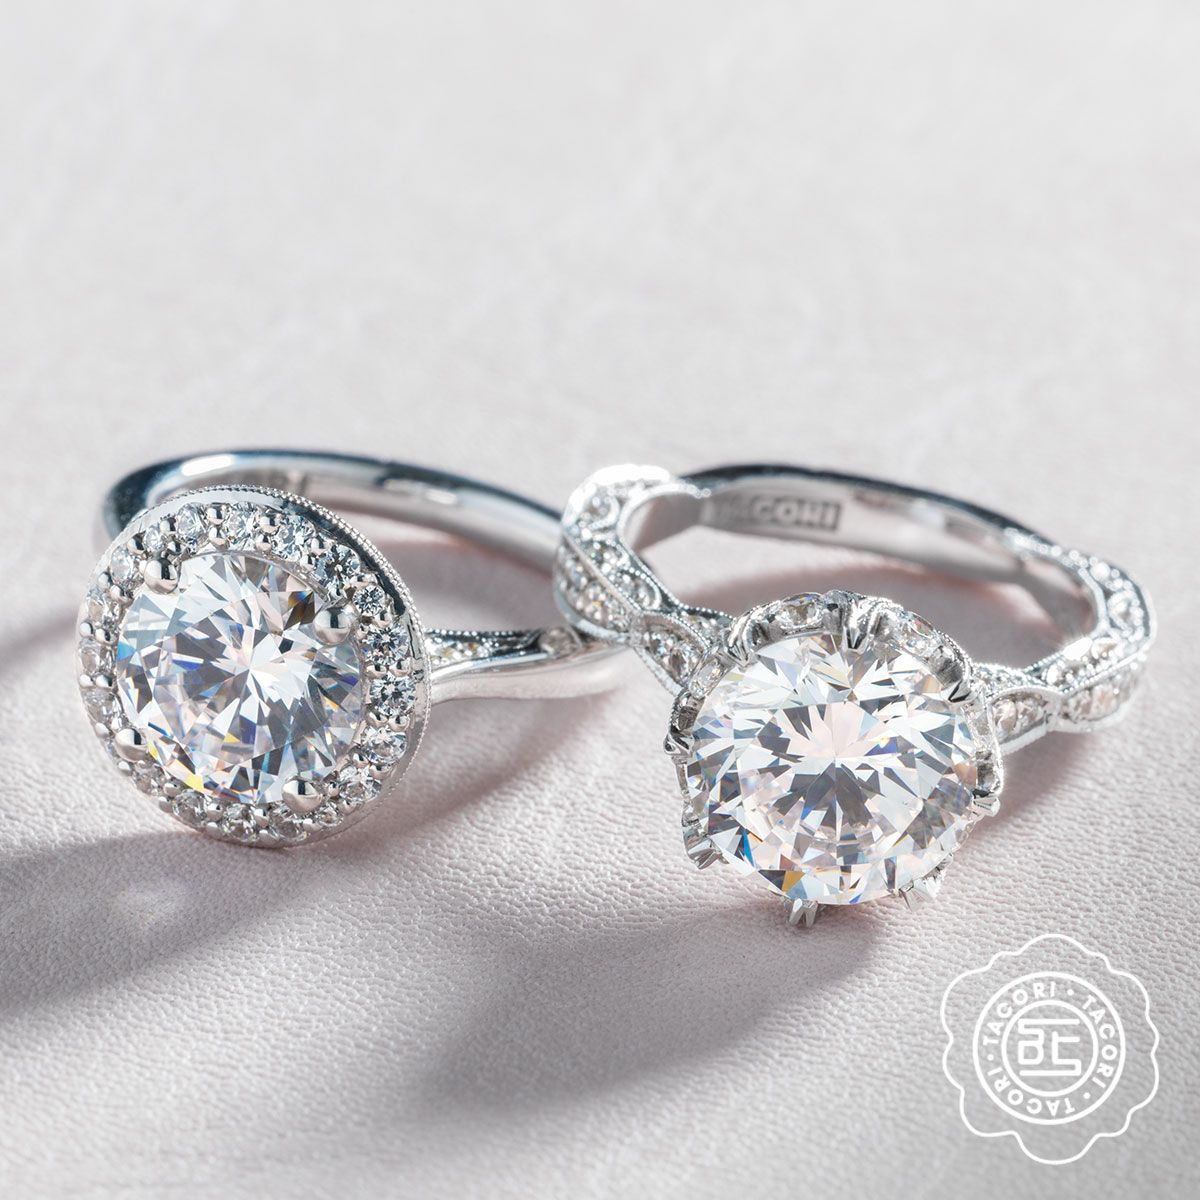 See Henne Jewelers Selection Of Tacori Jewelry And Engagement